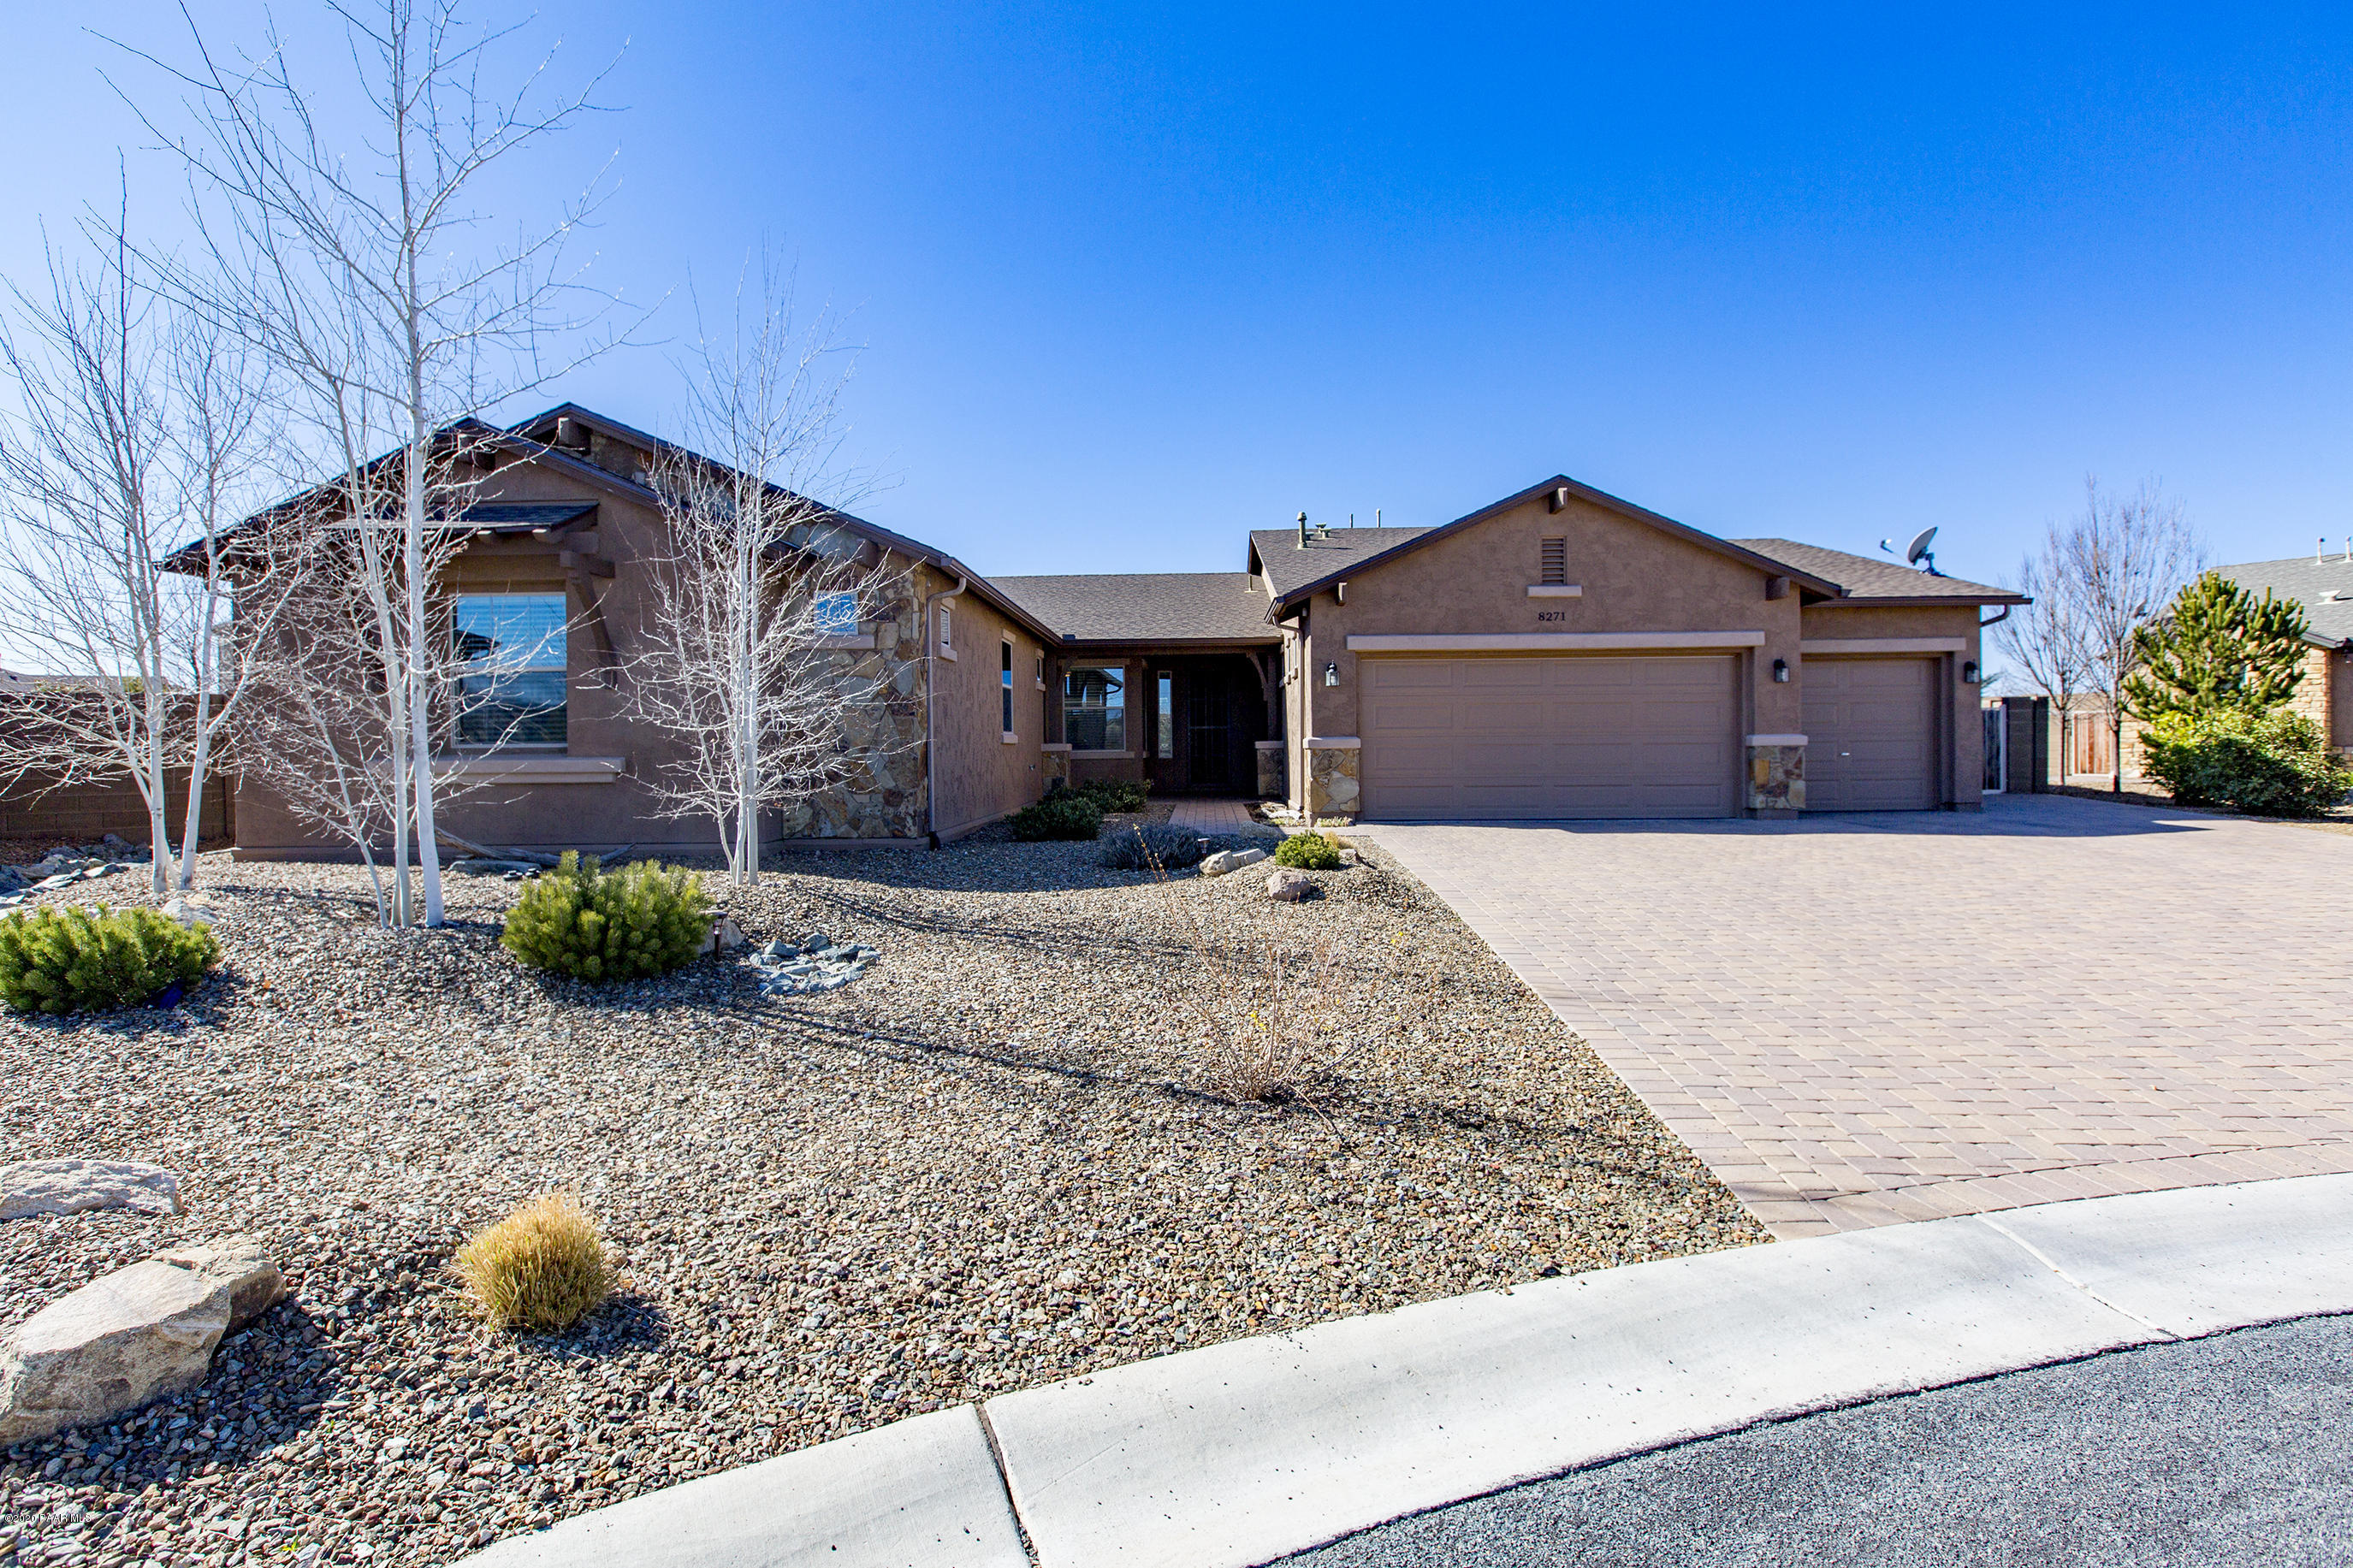 8271 N Zephyr Circle 86315 - One of Prescott Valley Homes for Sale